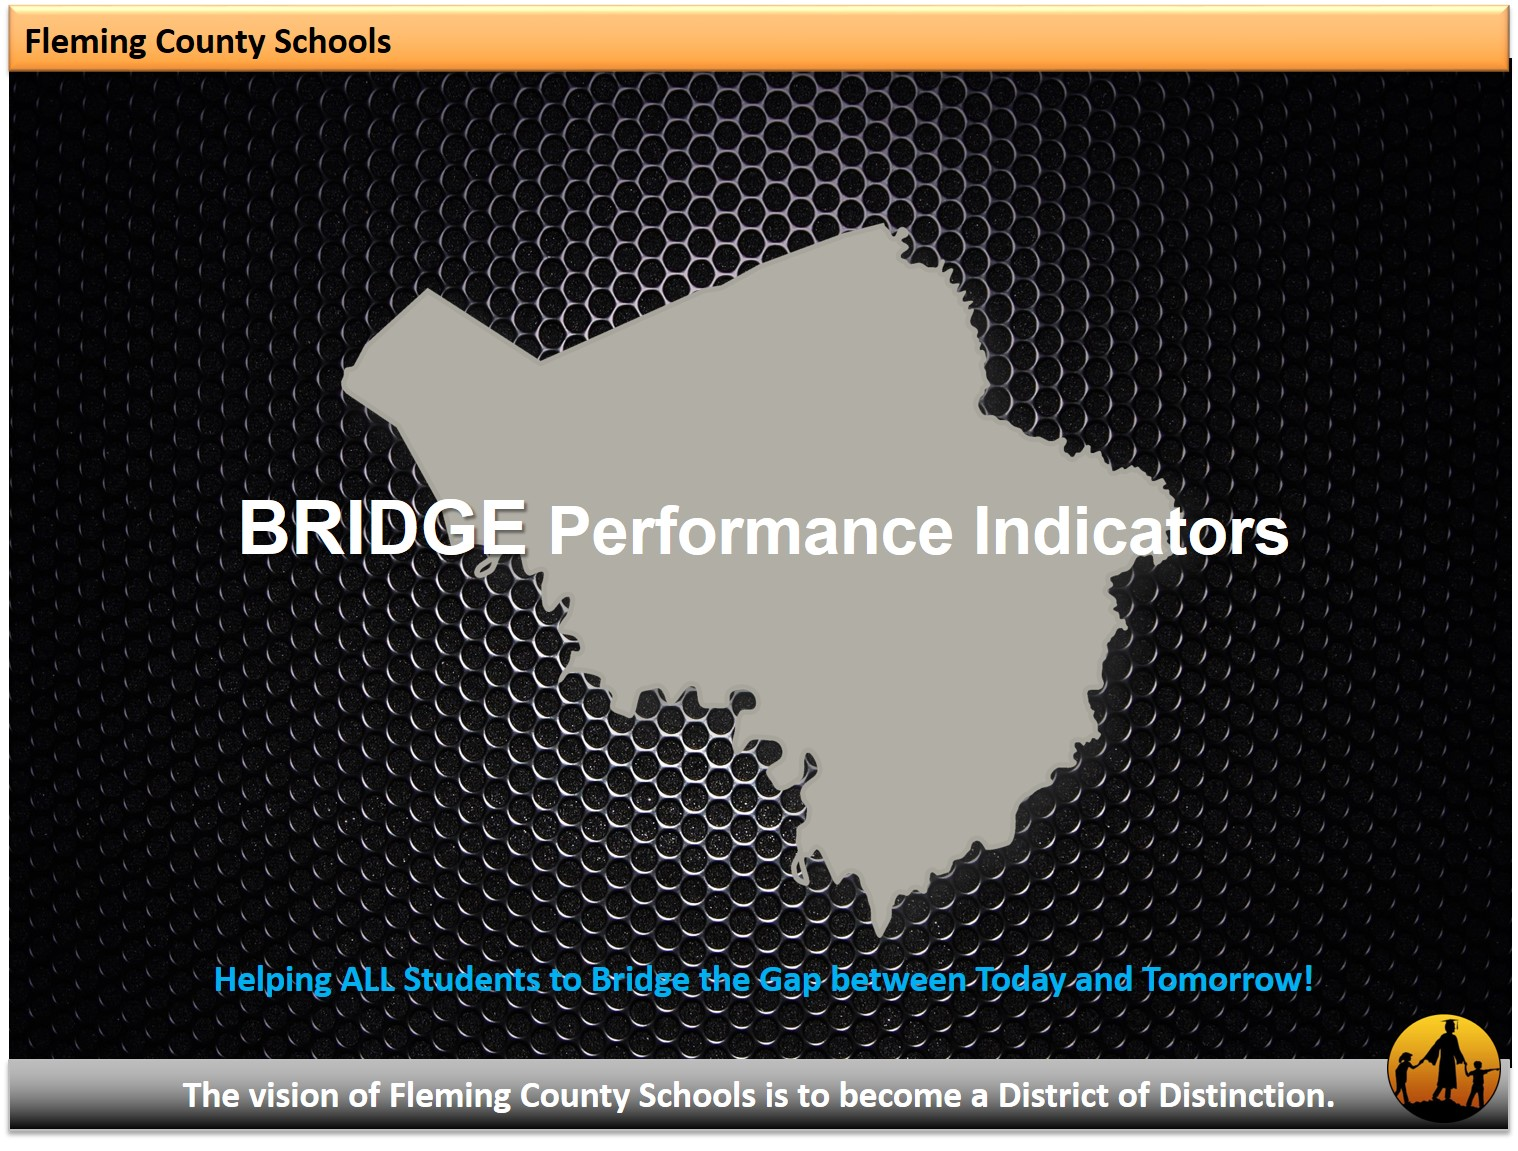 FCS Bridge Performance Indicators